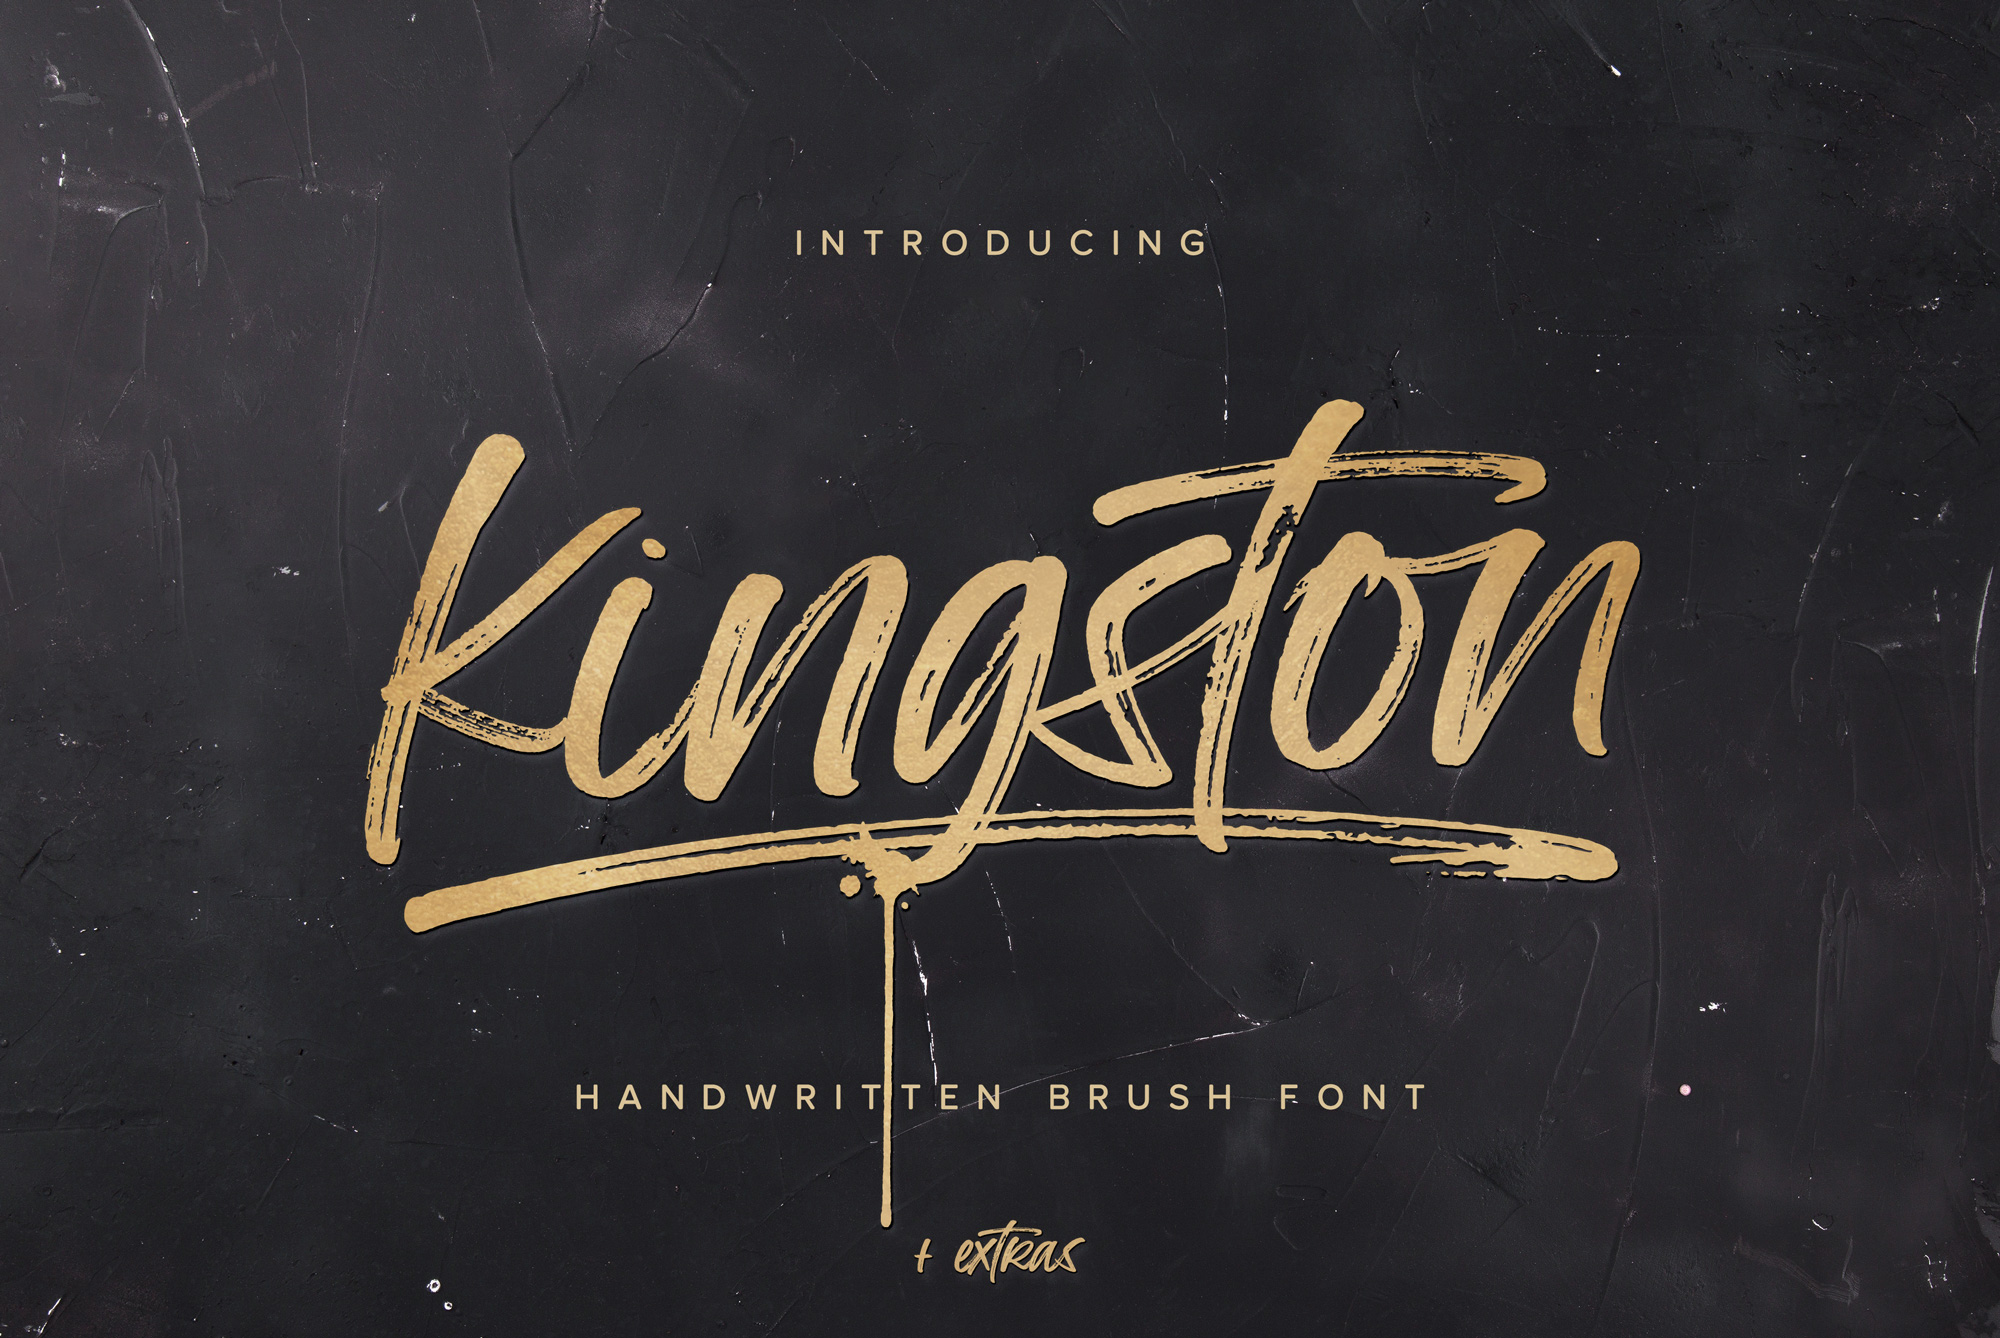 Kingston Handwritten Brush Font And Extras example image 1